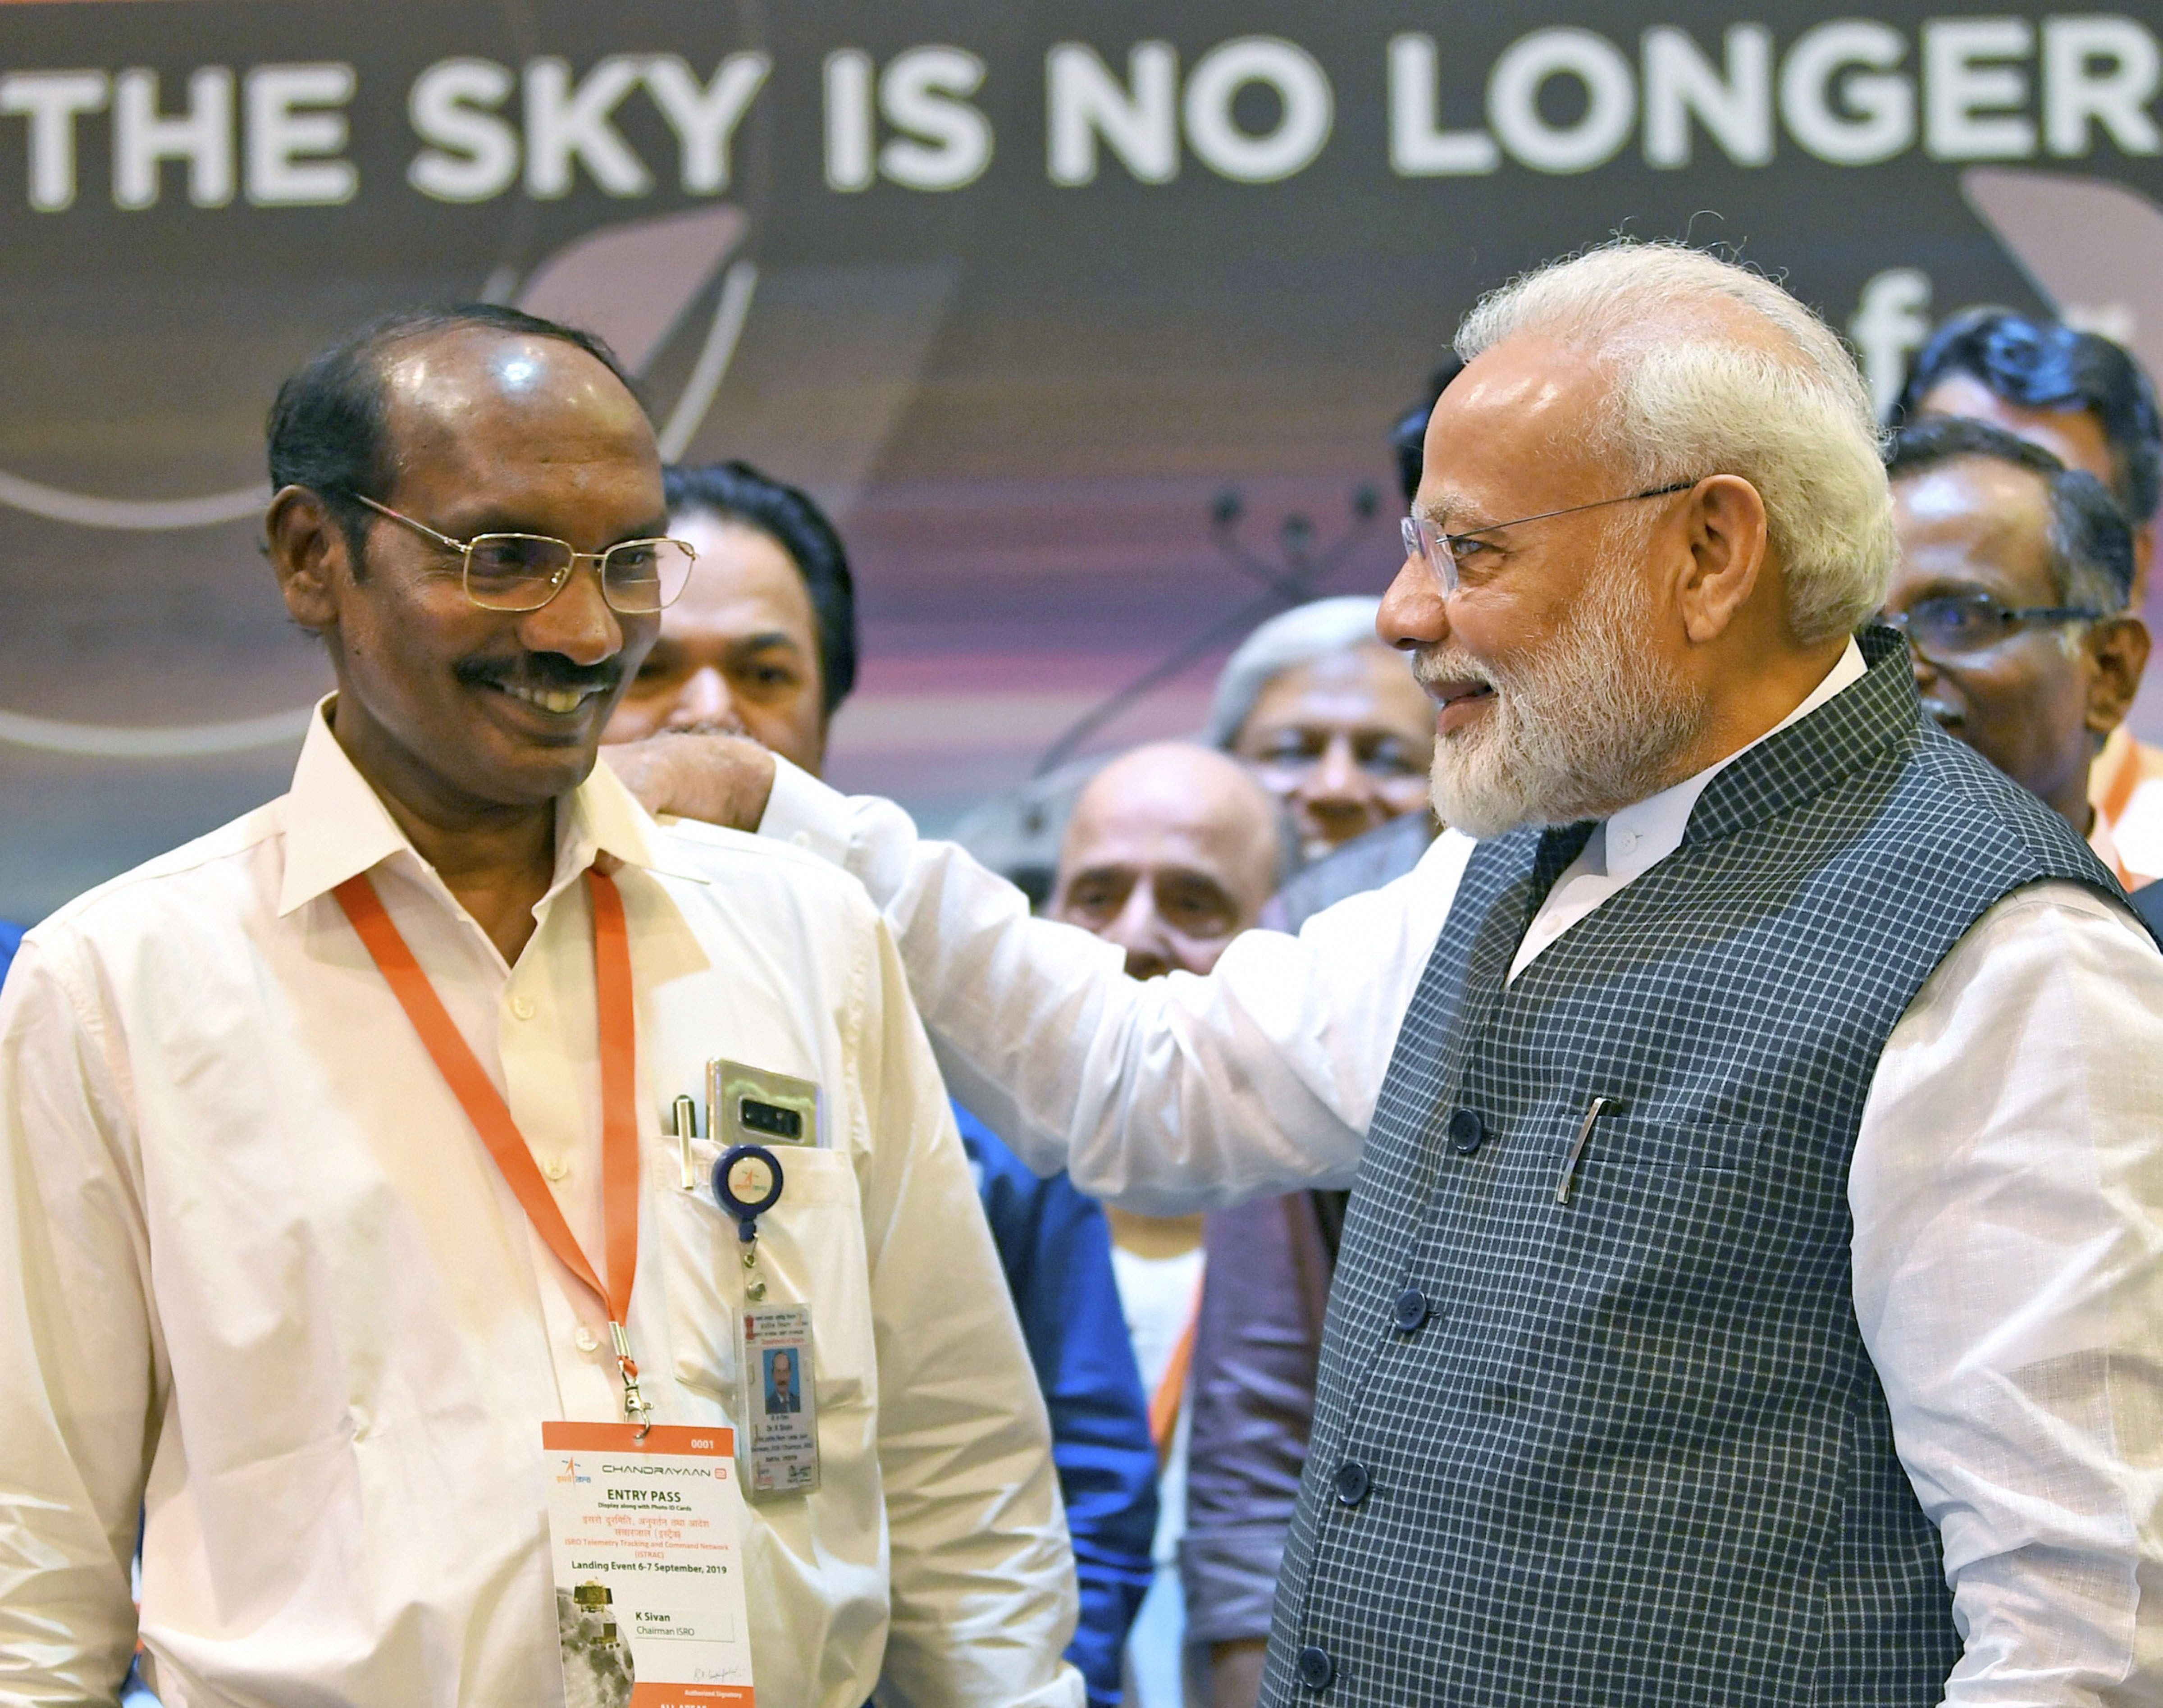 Prime Minister Narendra Modi interacts with Isro chairman Kailasavadivoo Sivan after connection with the Vikram lander was lost during soft-landing of Chandrayaan-2 on lunar surface, in Bengaluru, on Saturday, September 7, 2019.